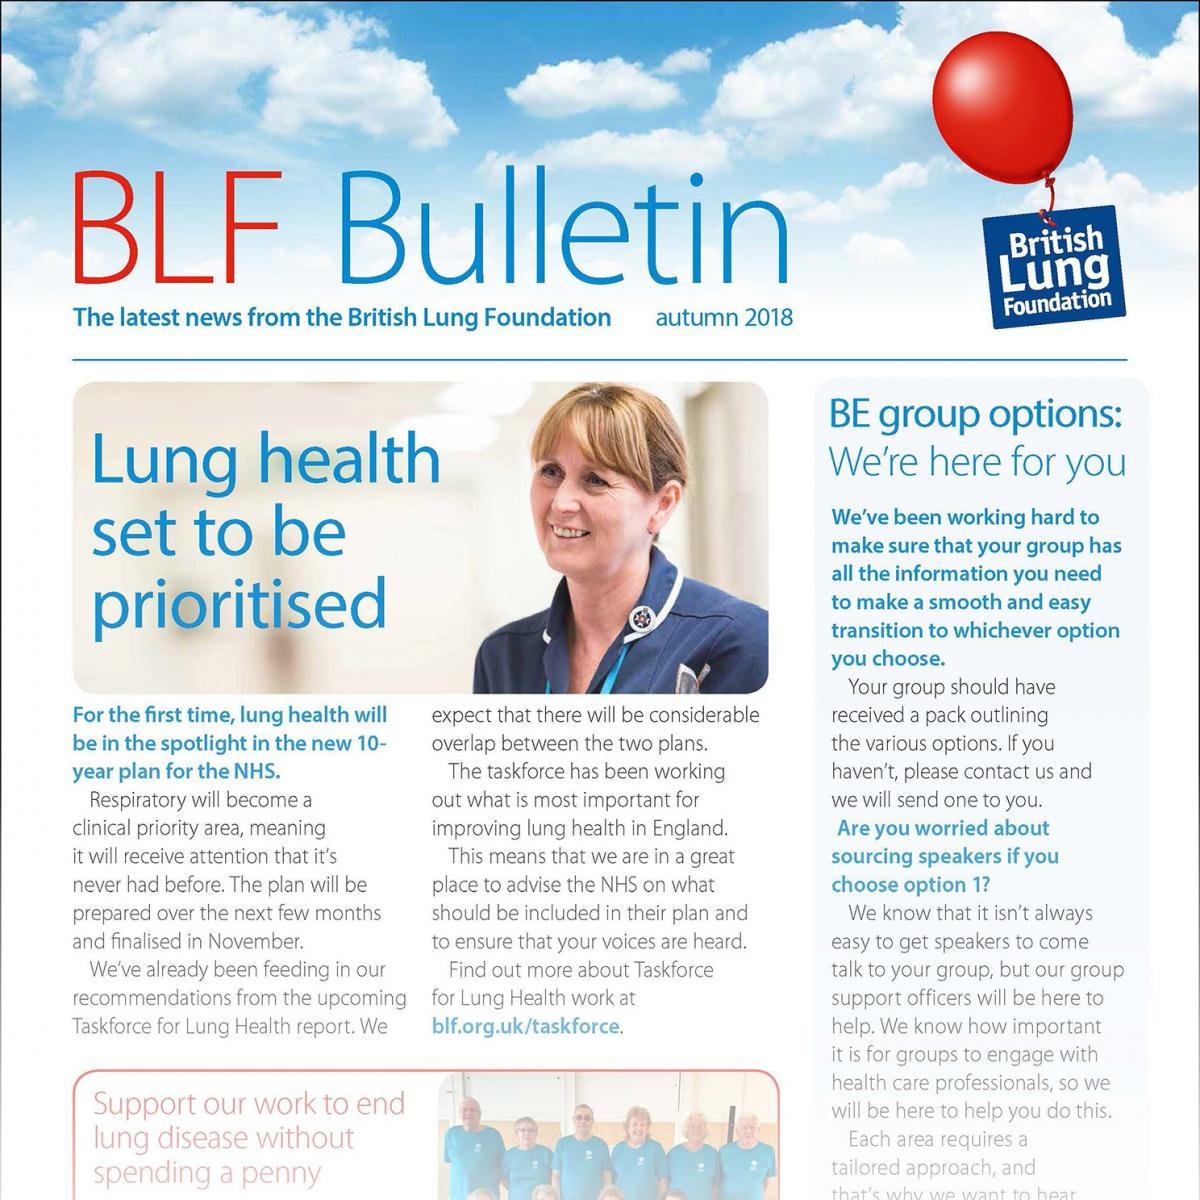 BLF Bulletin Summer 2018 image